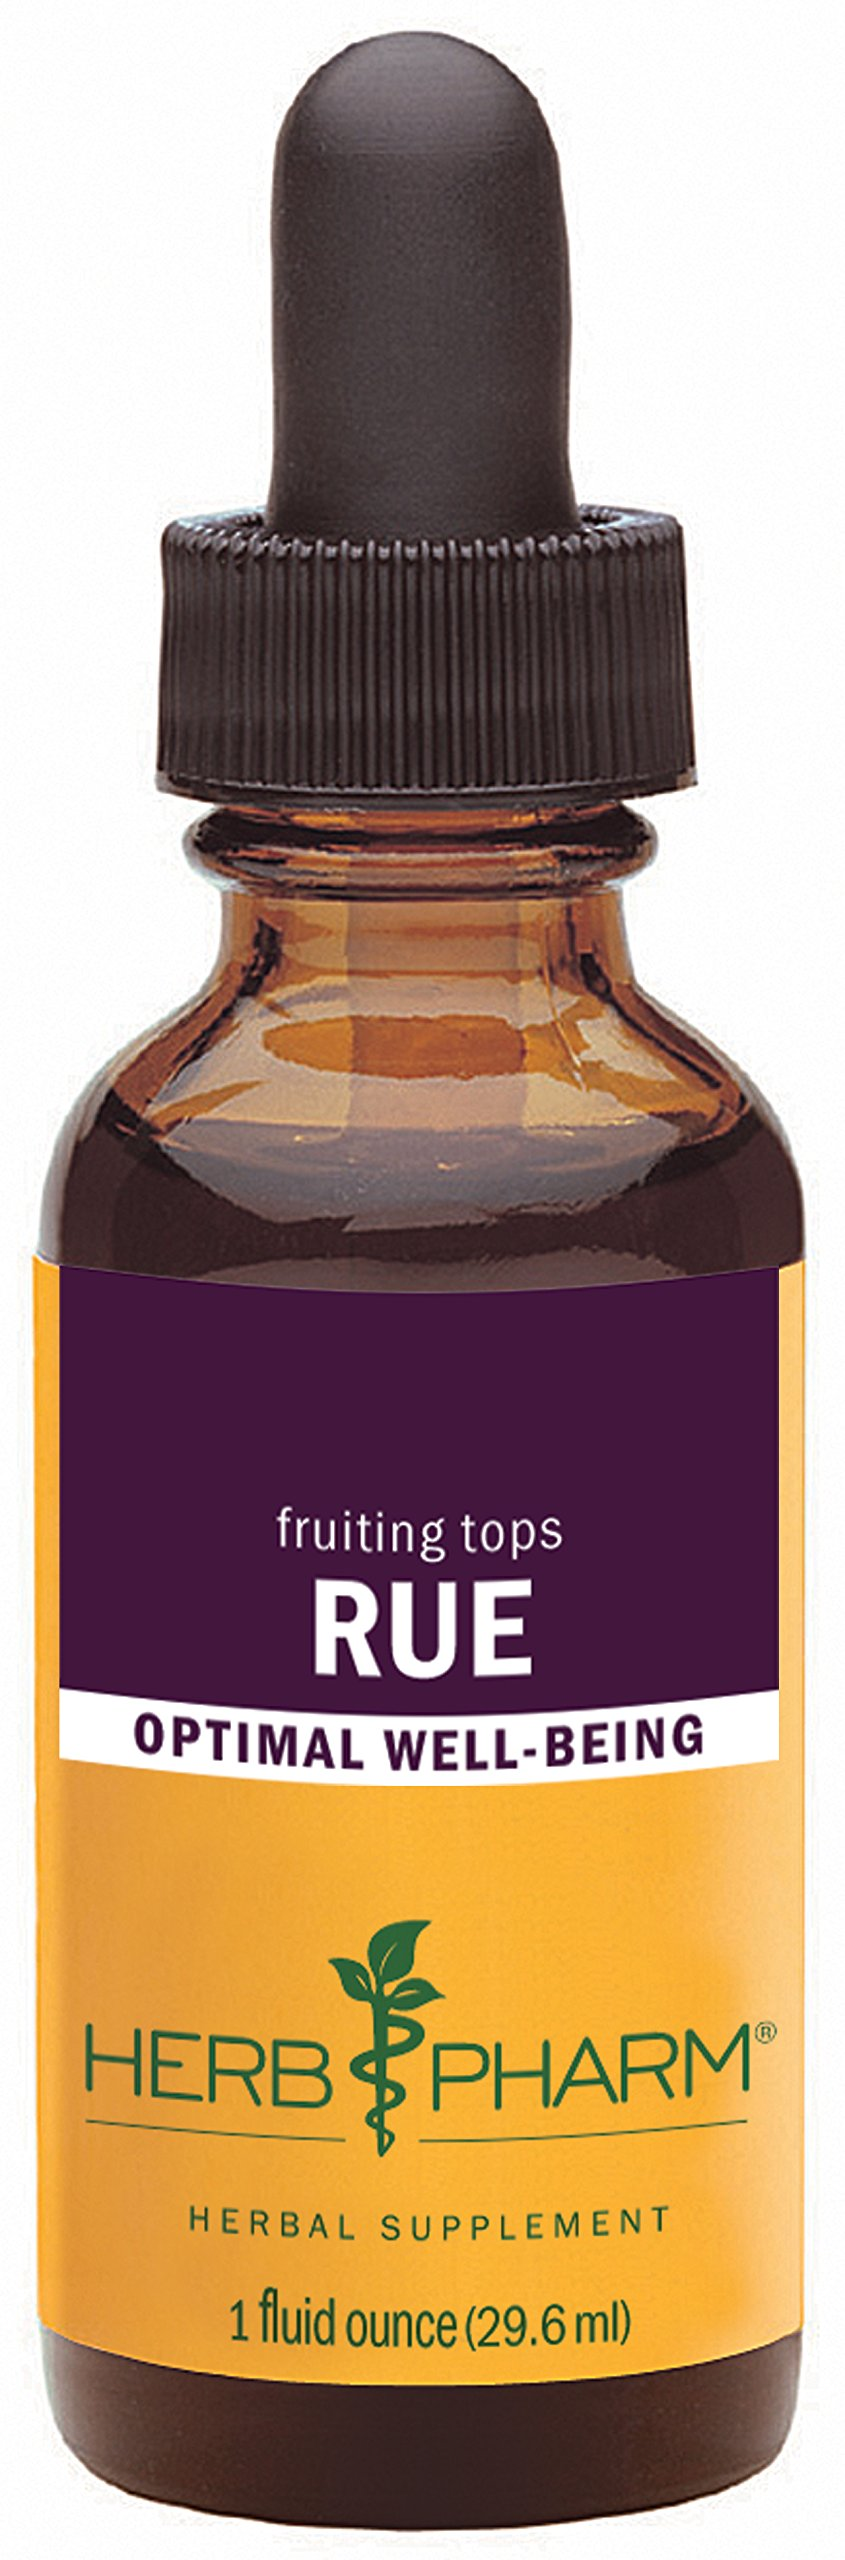 Herb Pharm Certified Organic Rue Extract - 1 Ounce